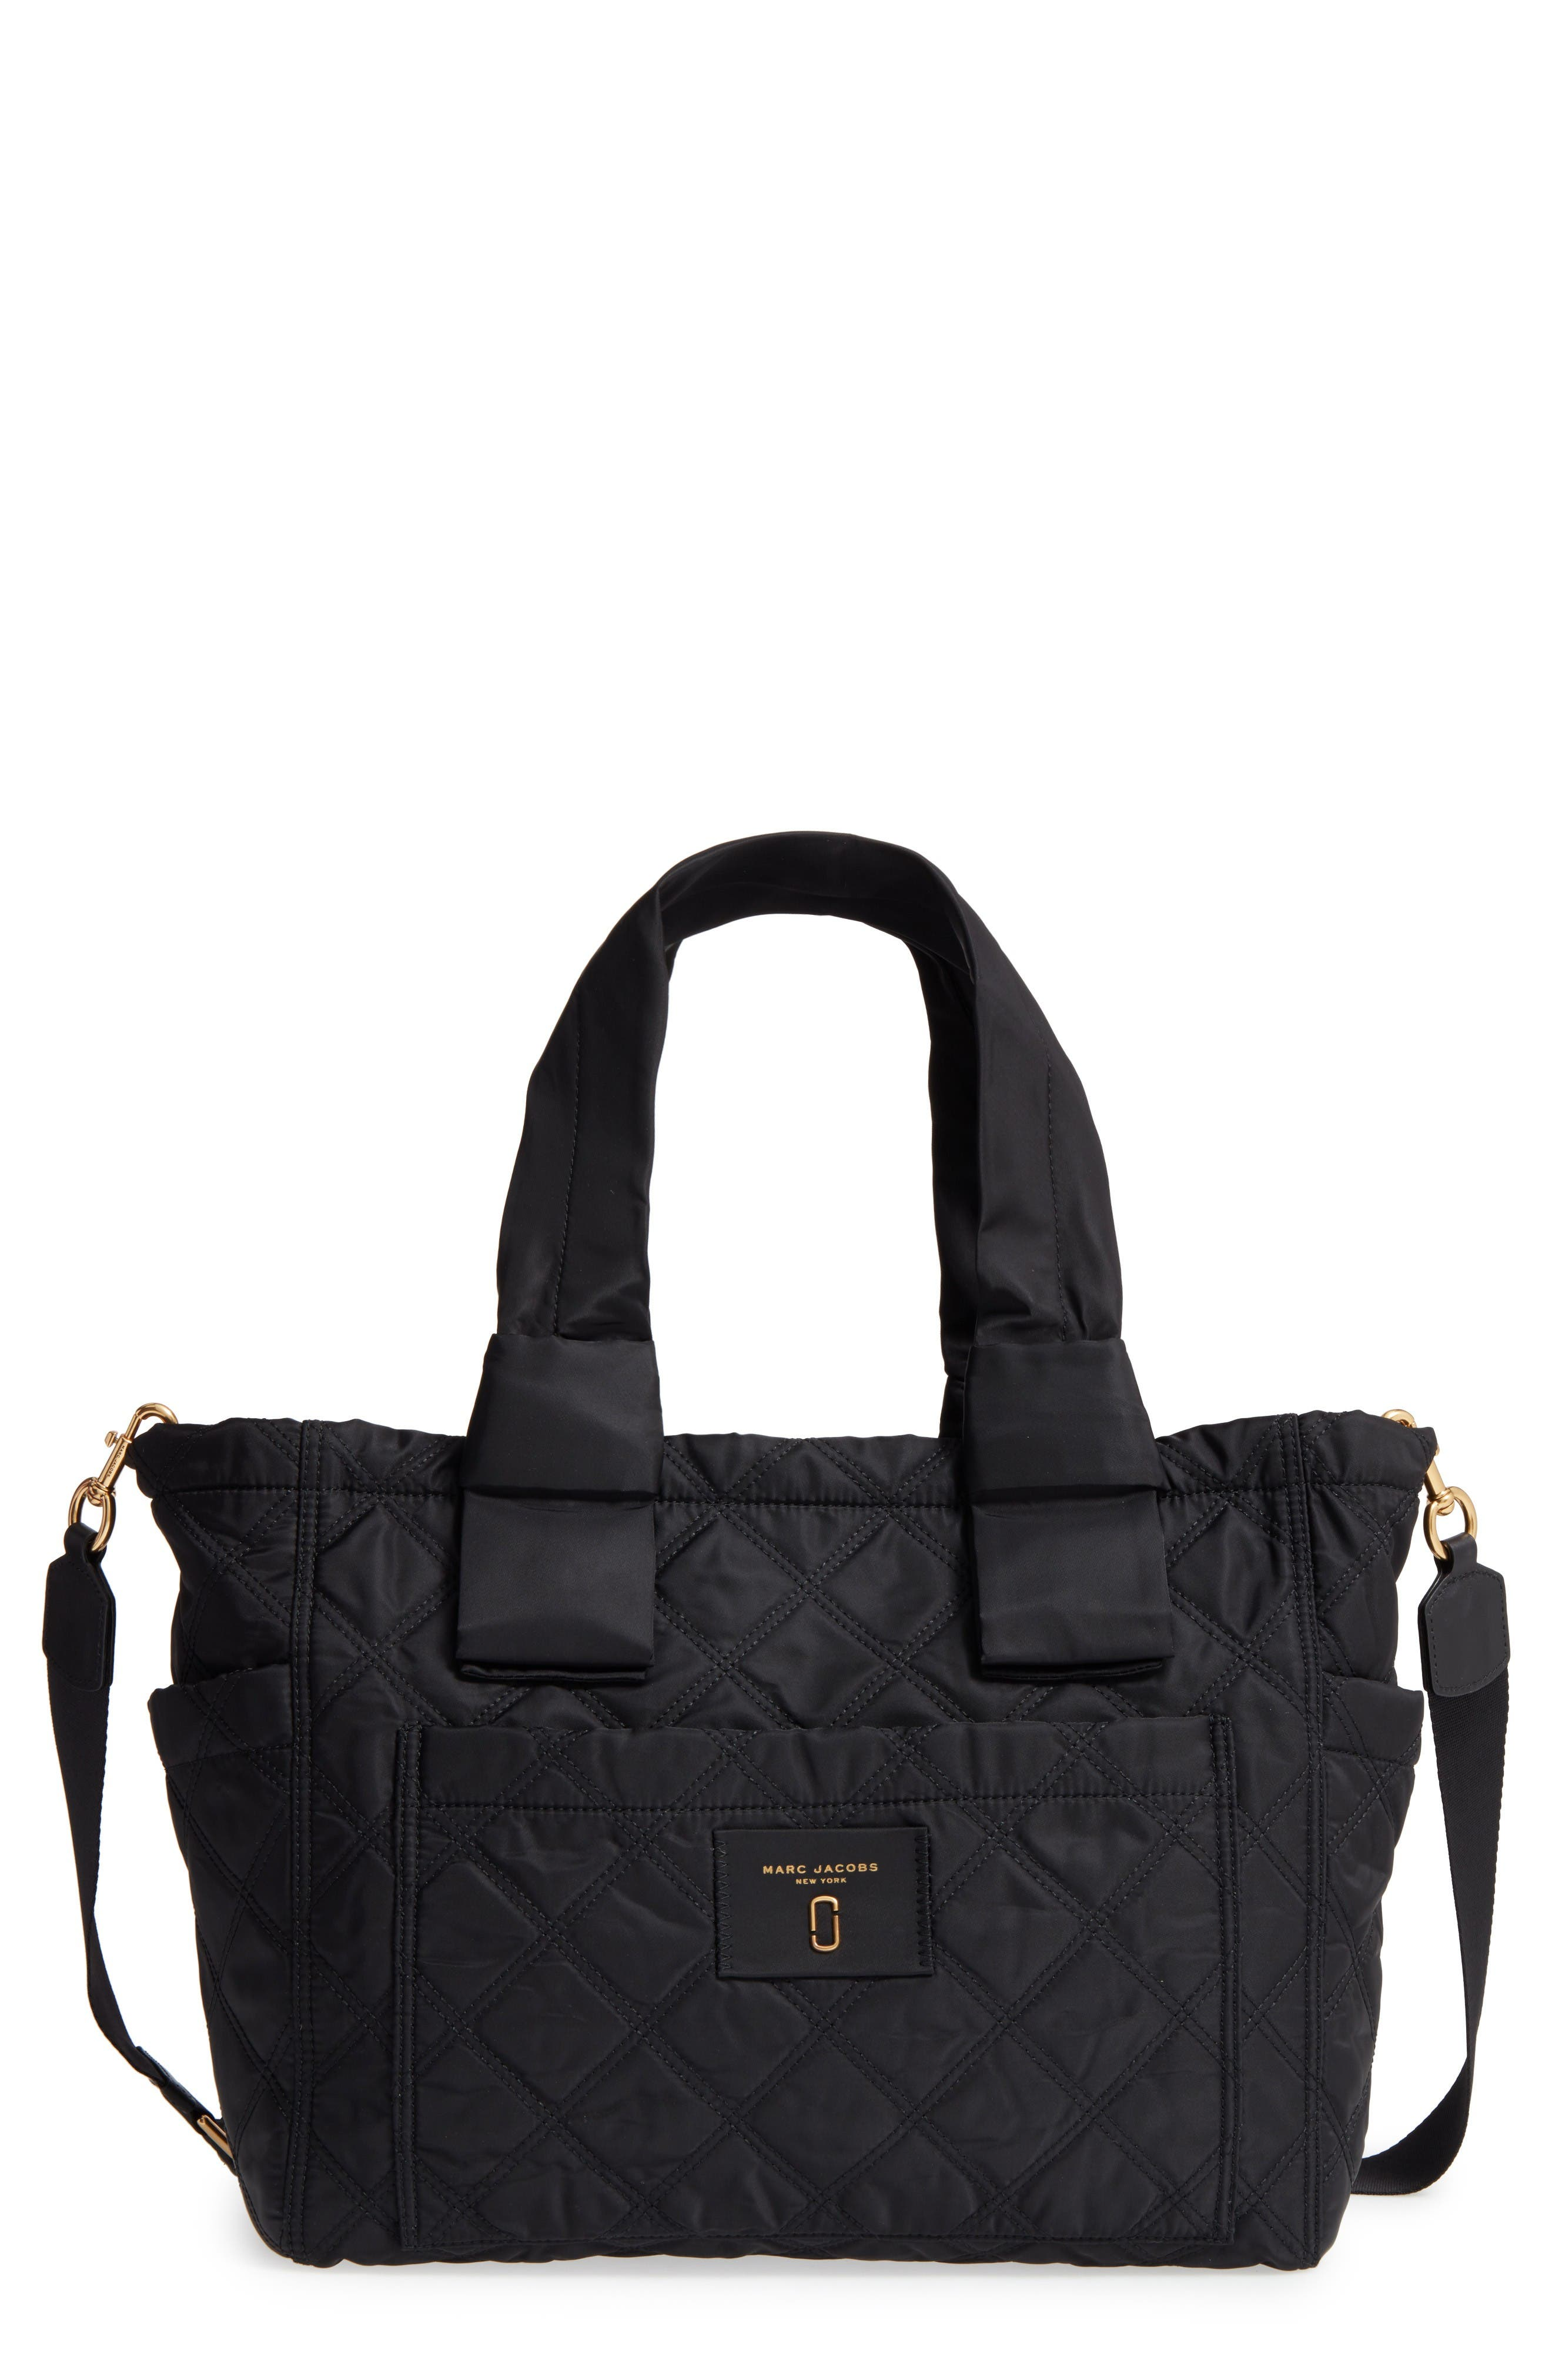 marc jacobs nylon diaper bag images galleries with a bite. Black Bedroom Furniture Sets. Home Design Ideas